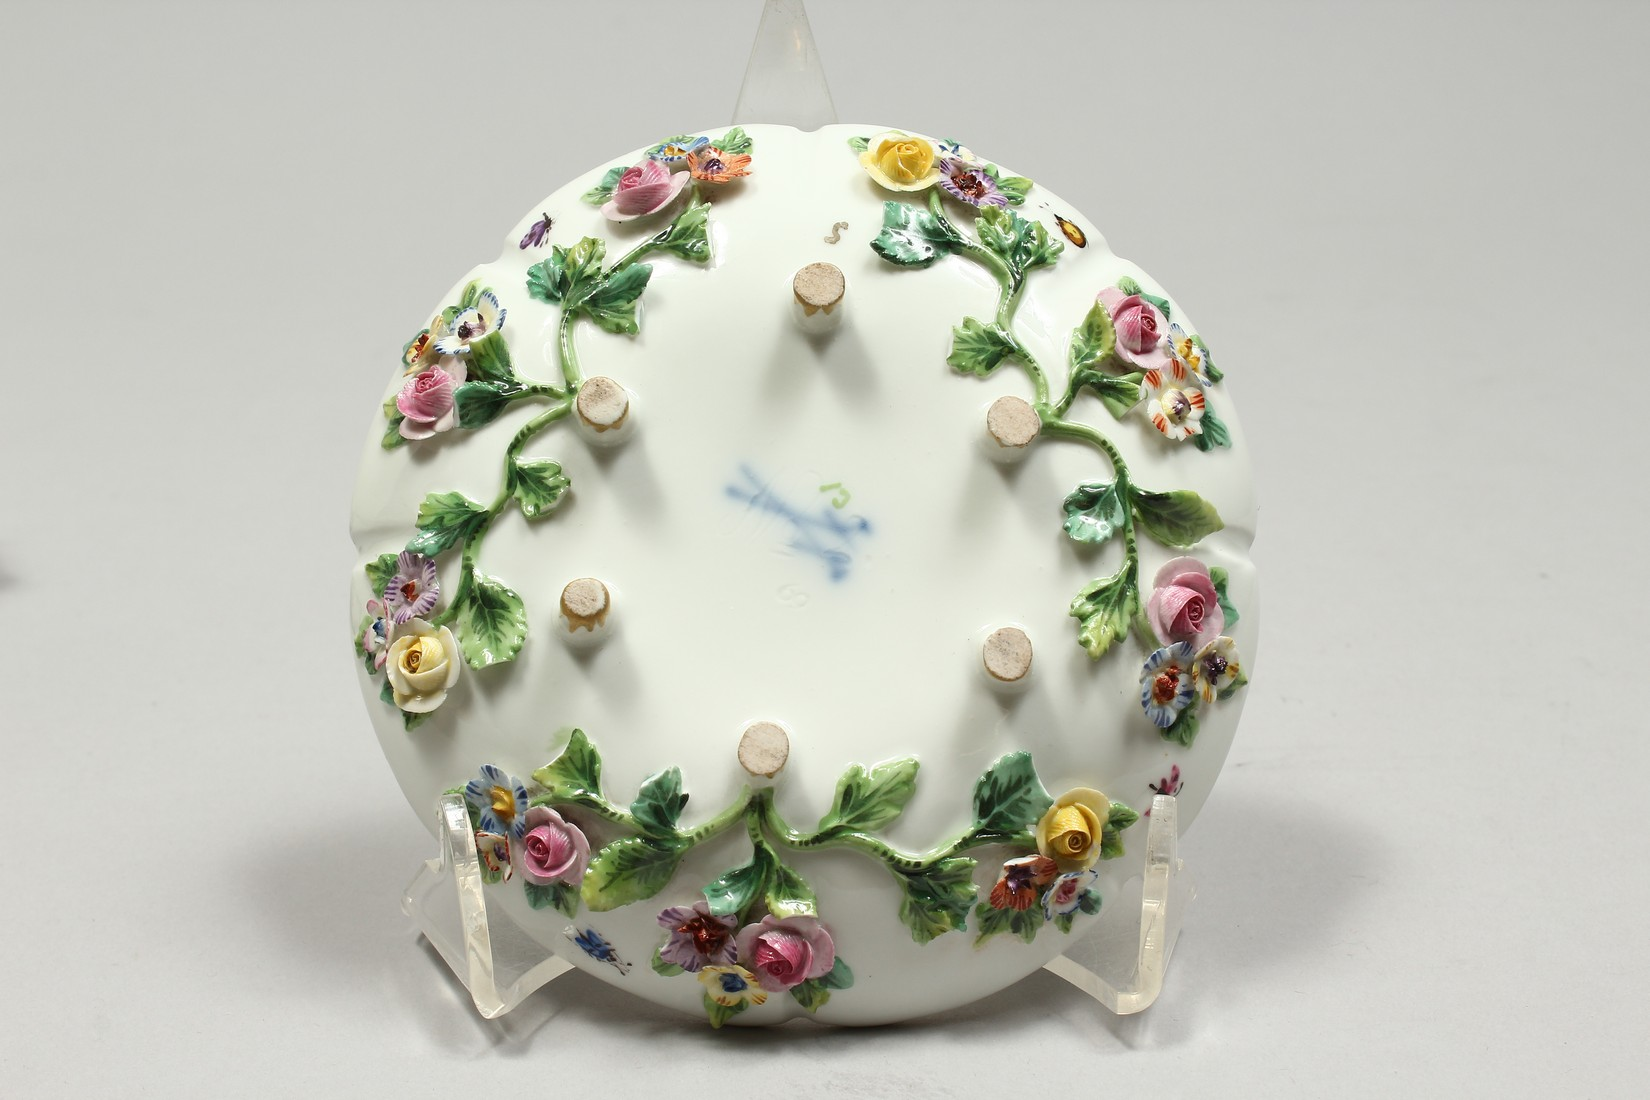 TWO MEISSEN PORCELAIN CUPS AND SAUCERS AND A SAUCER, encrusted with flowers and painted with - Image 11 of 16